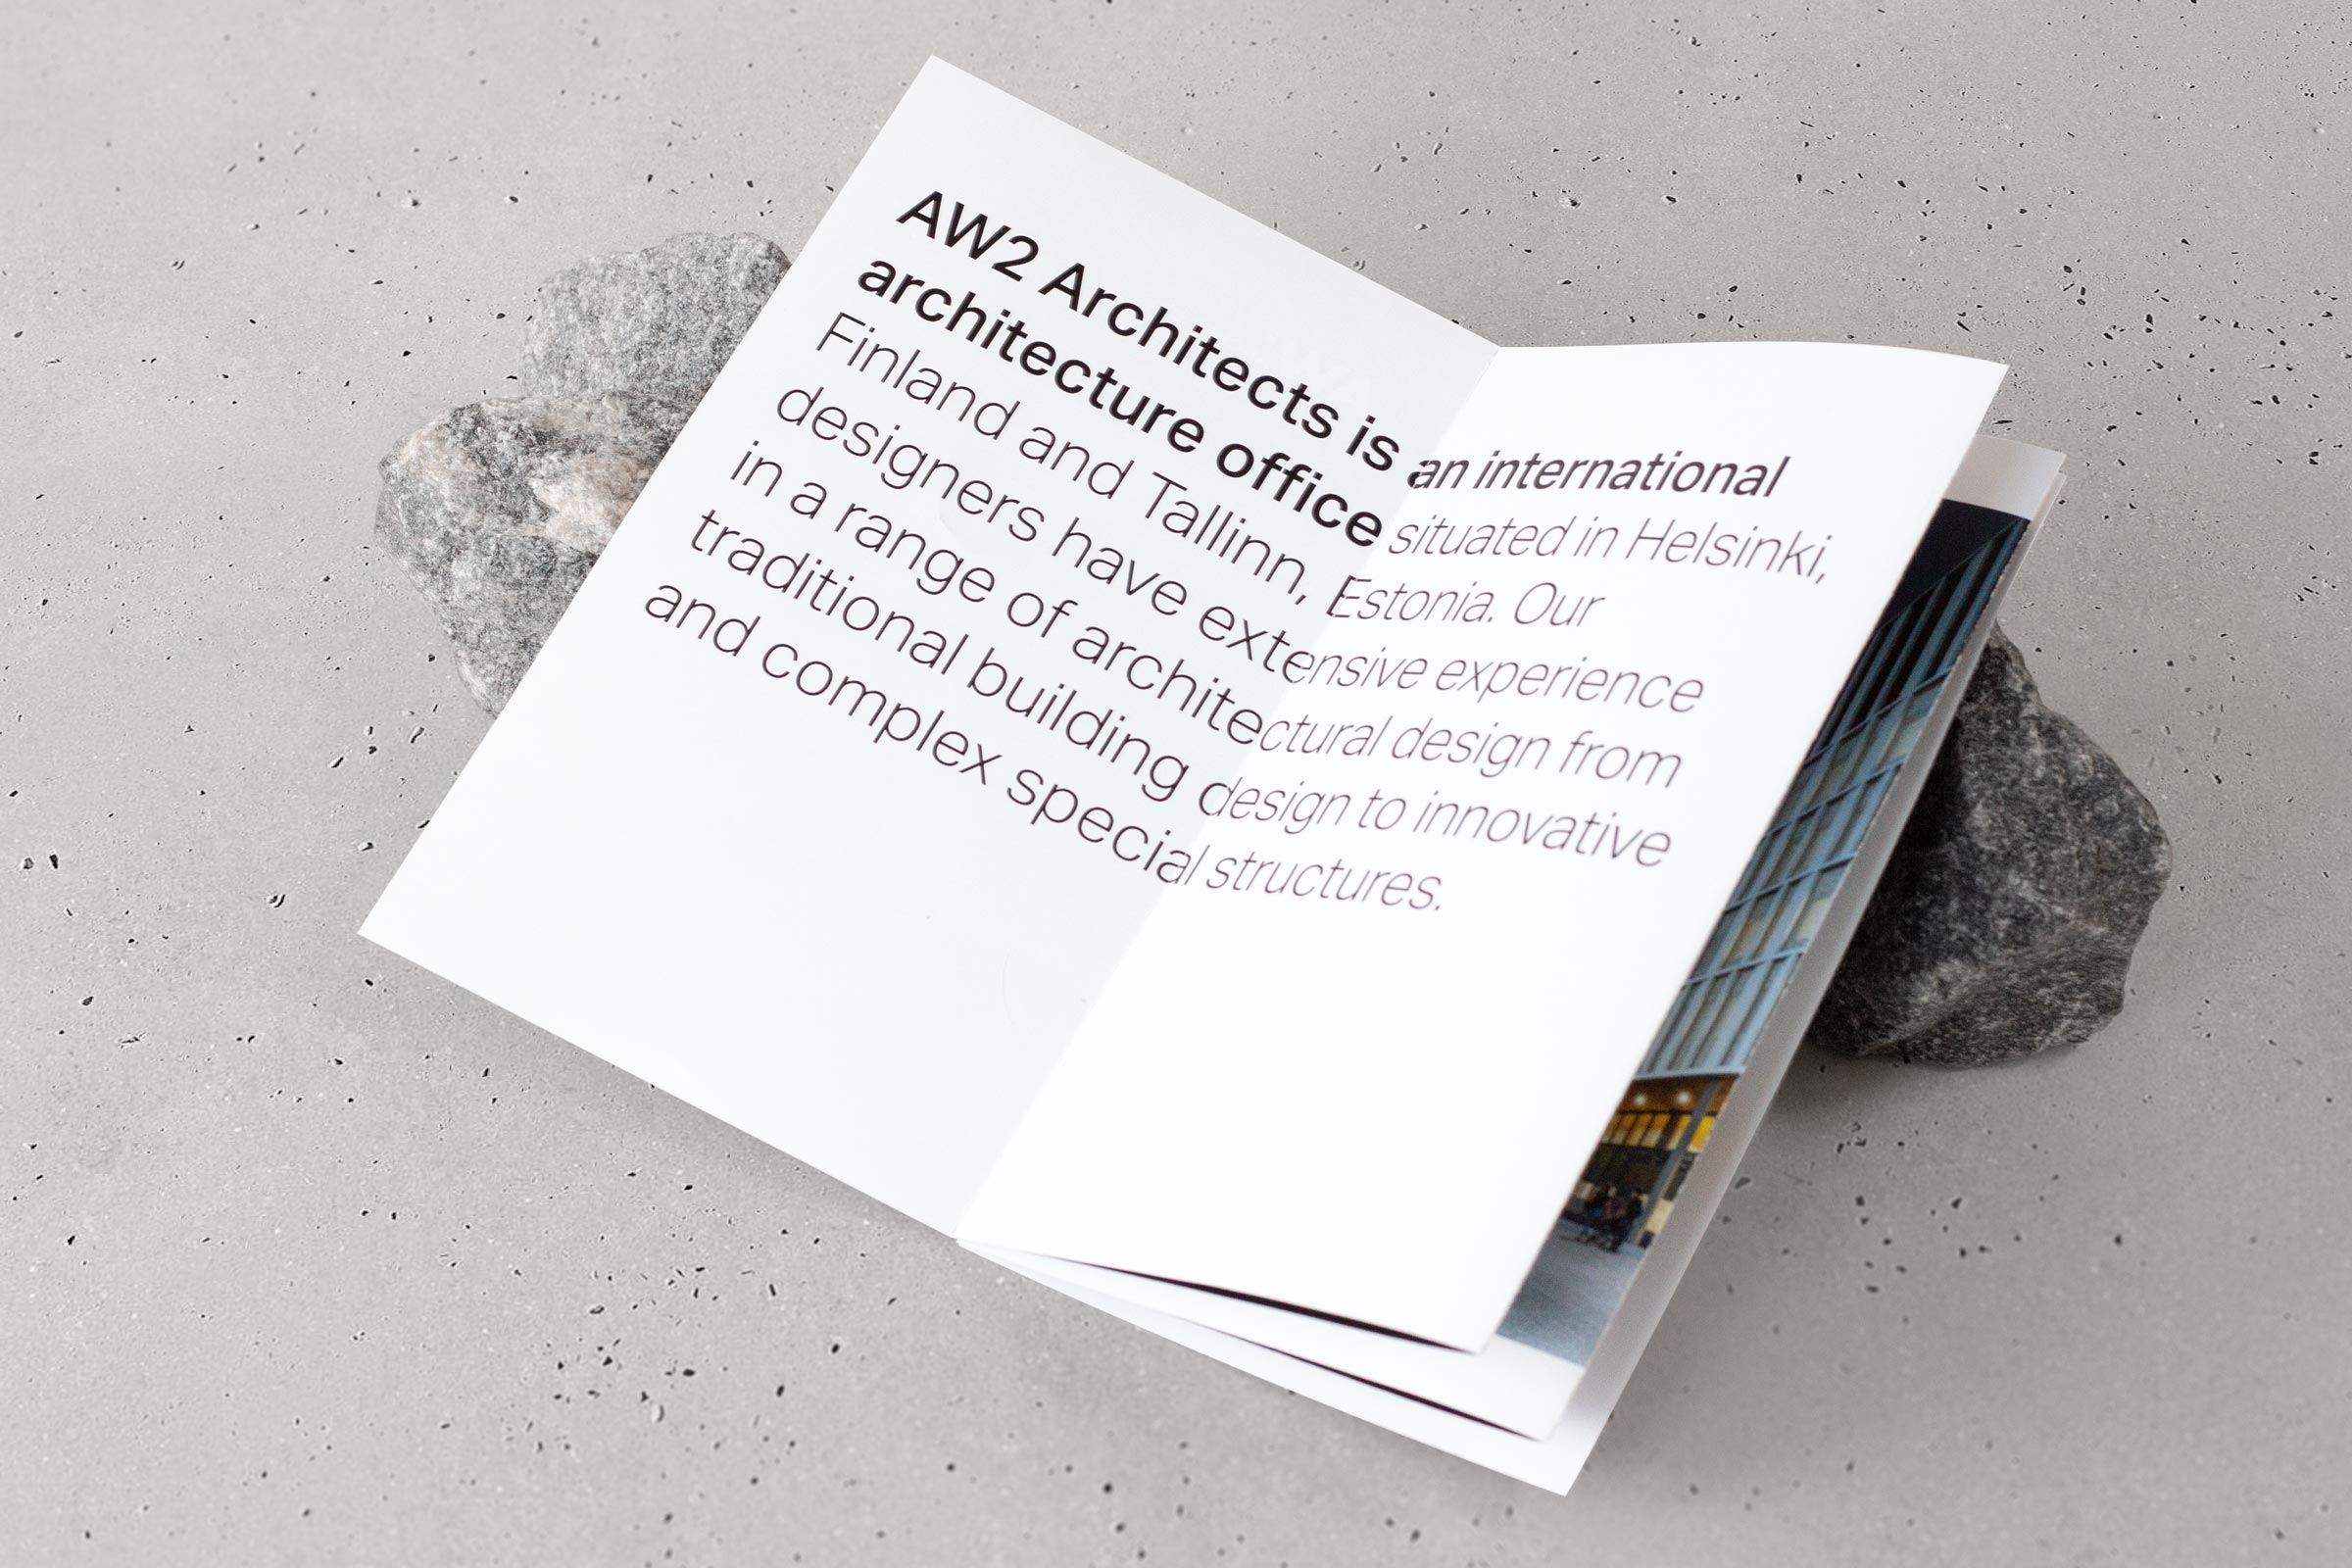 aw2-booklet-2-2400